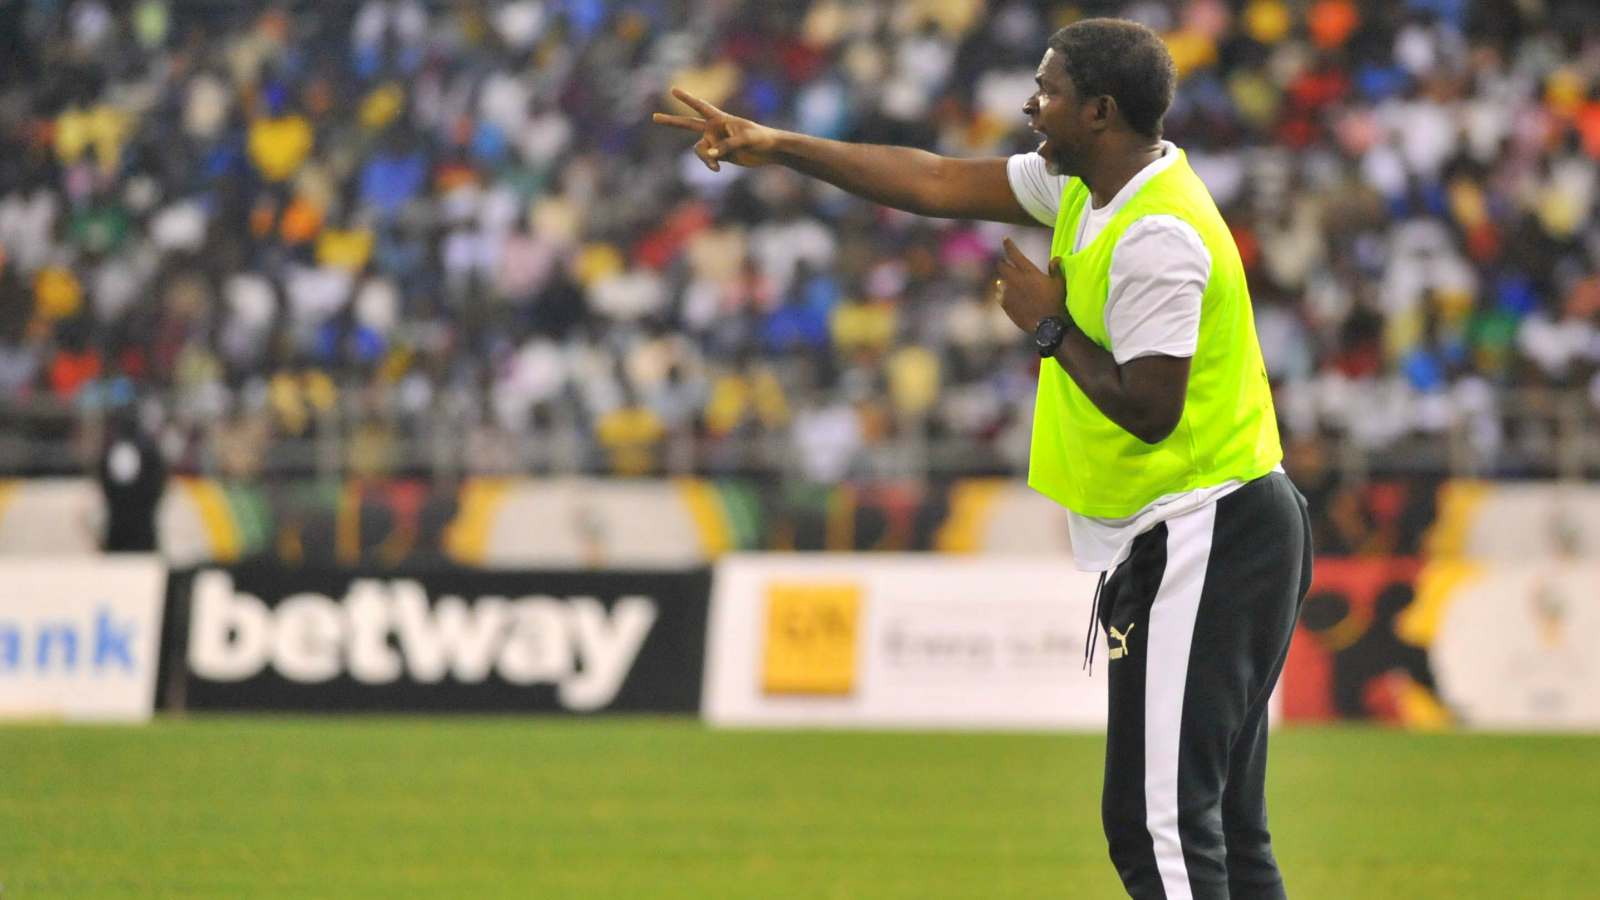 Enyimba denies interest in WAFU Champion Maxwell Konadu